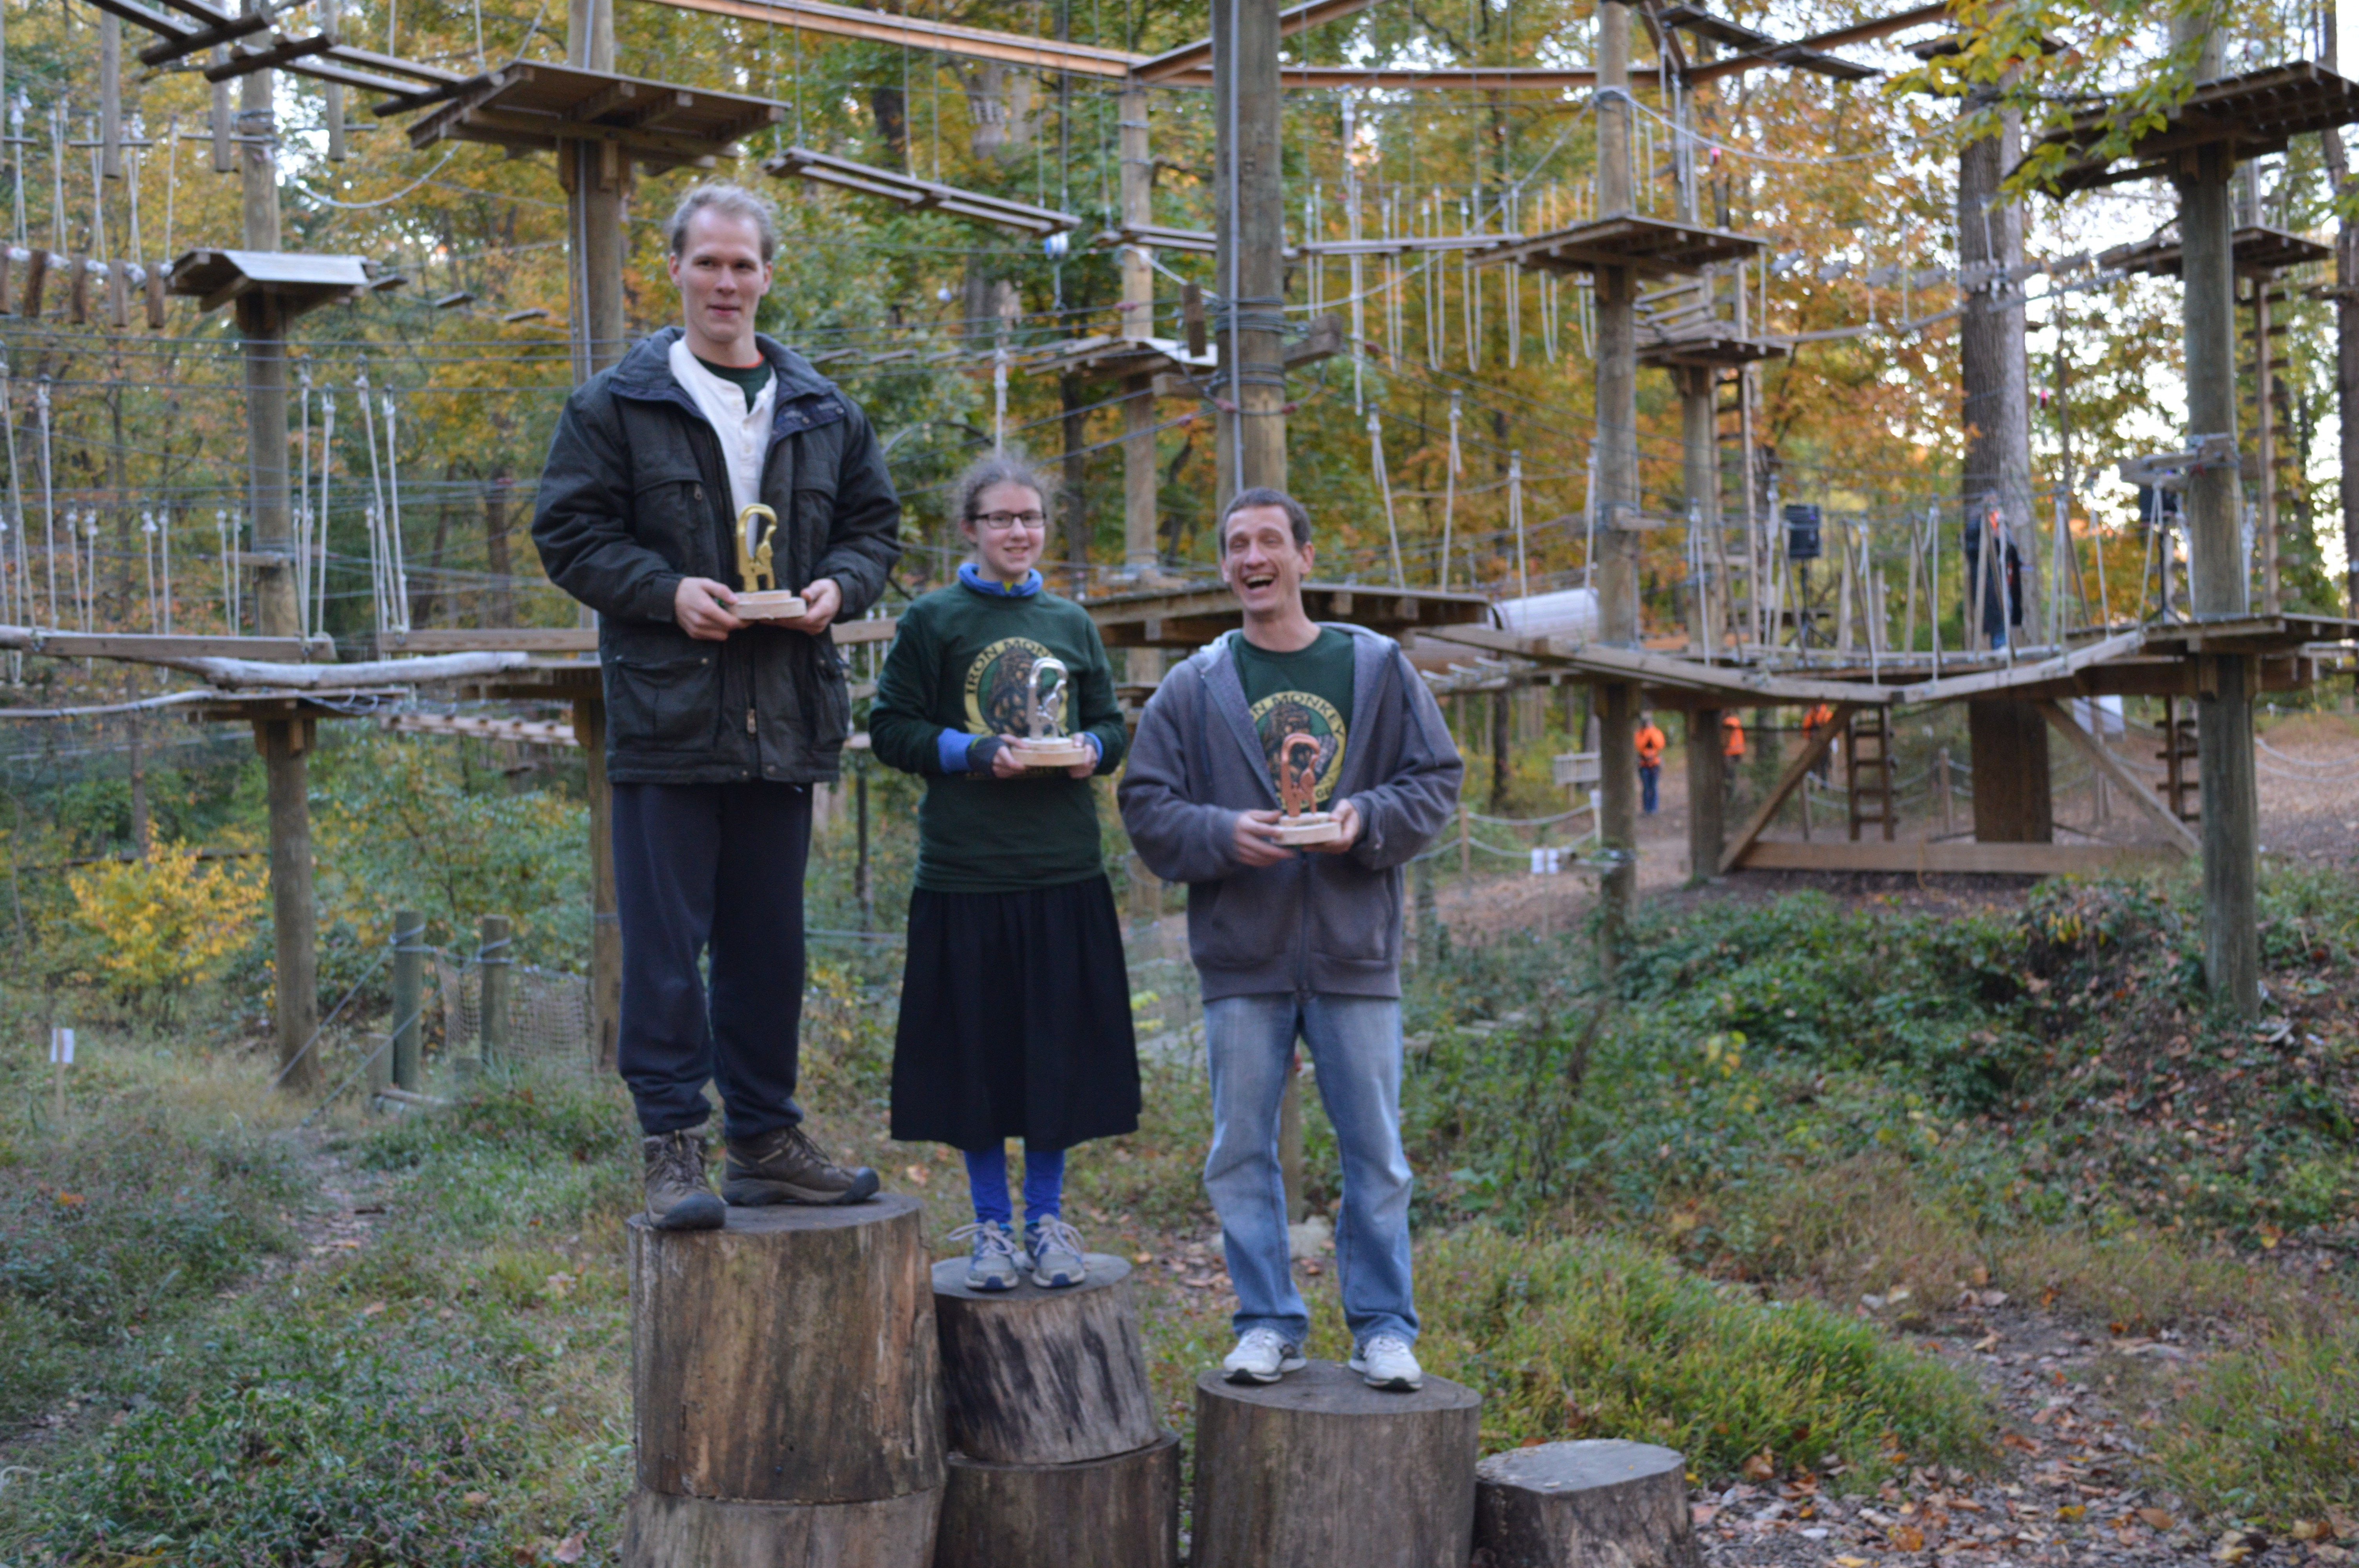 Adventure Park Athletes Compete In Sandy Spring S Treetops At First Ever Iron Monkey Challenge